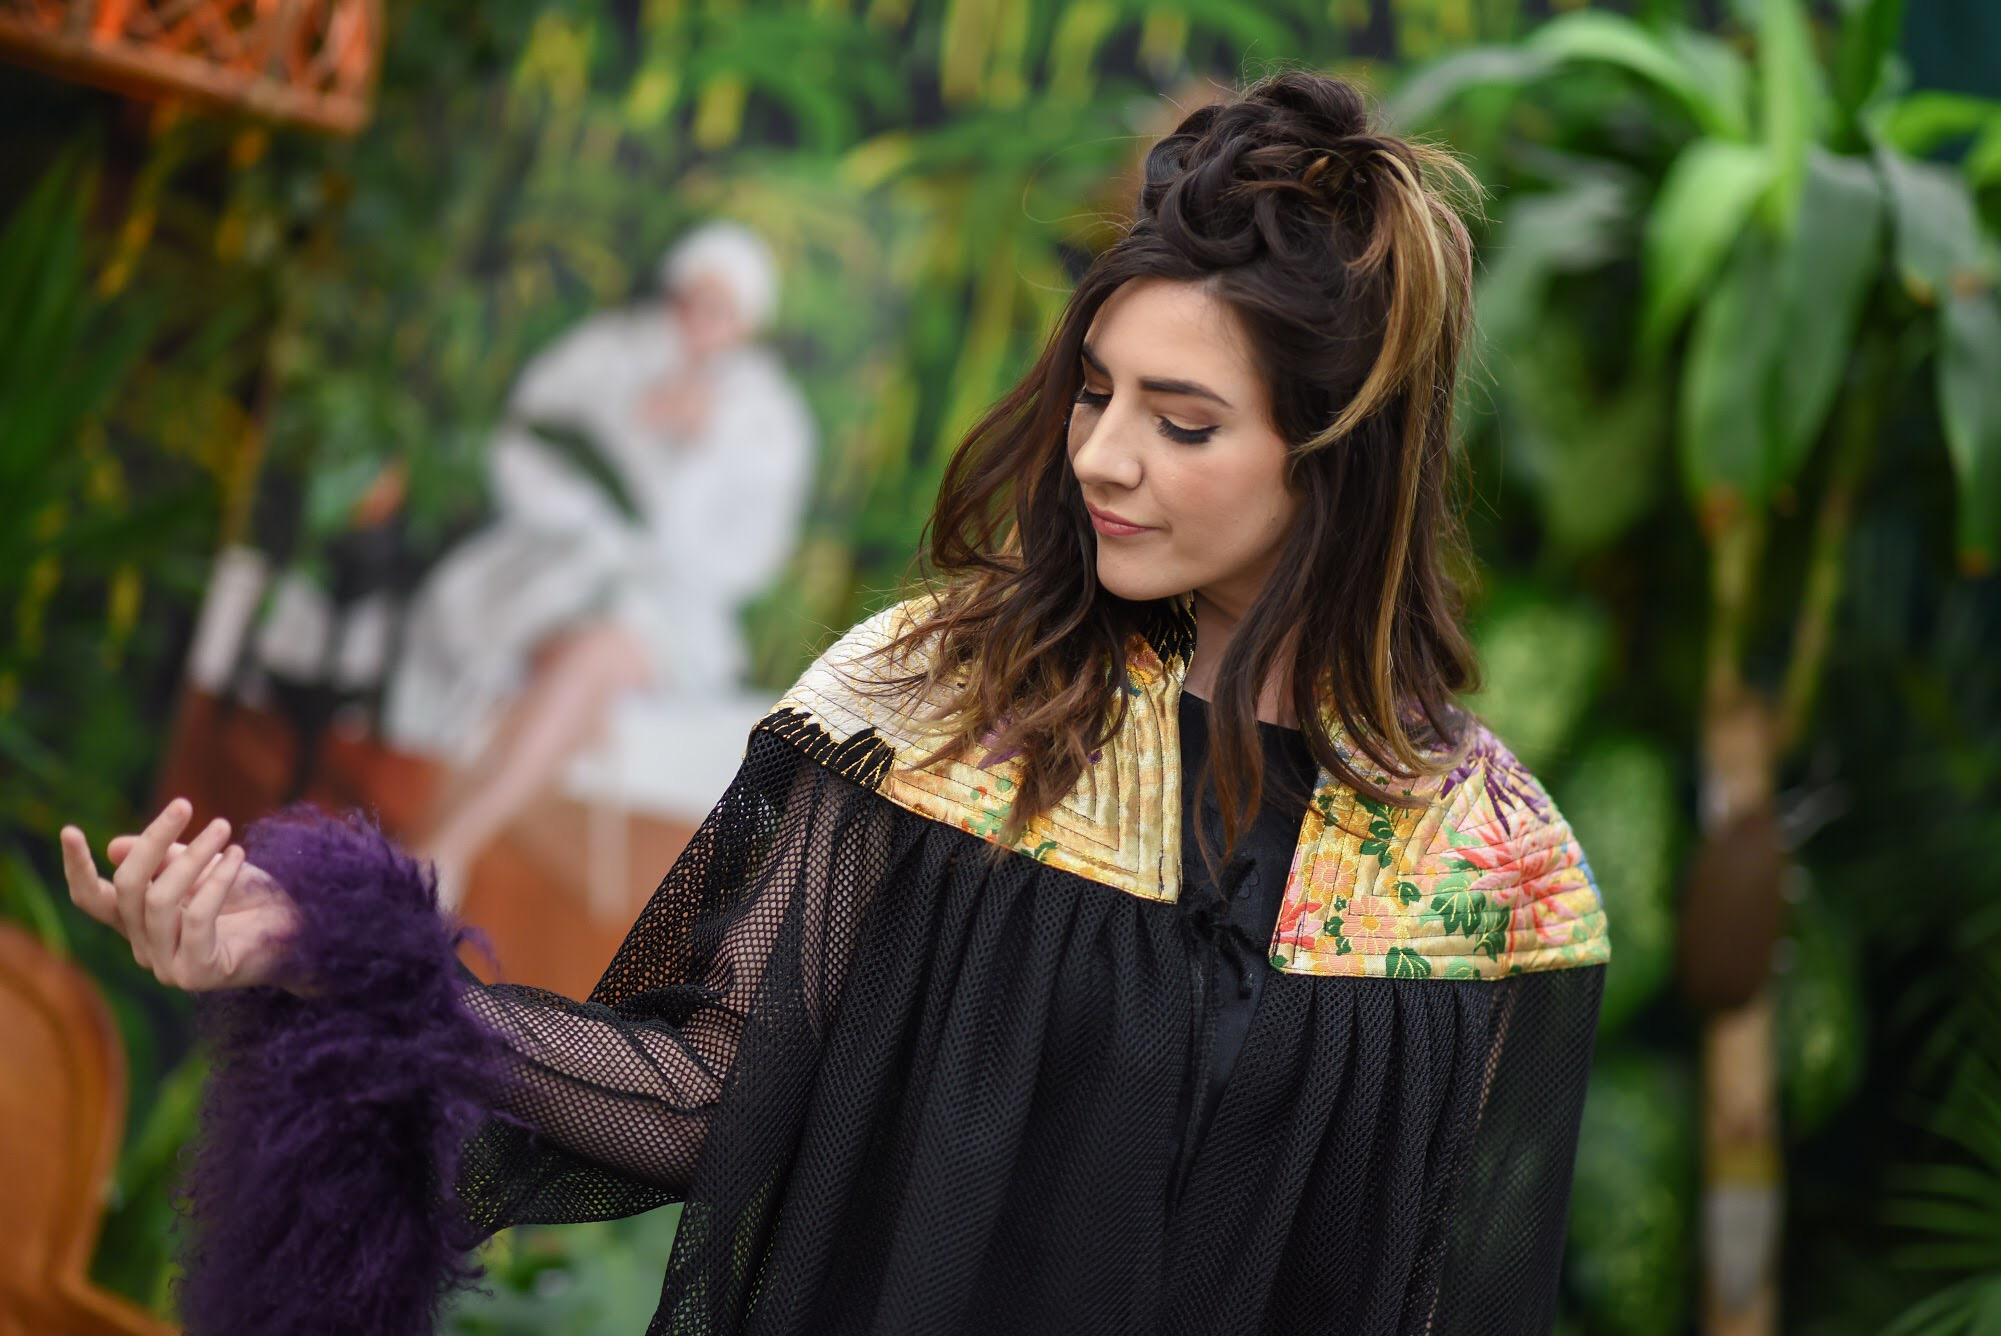 Model  Julianne Selke  wearing  Susan Bradley . I picked a rich looking garment that would pop against Hilton's green jungle. The jewel tones in the shoulders of the caplet add a bursts of bright colors and the fuzzy, alpaca-trimmed, mesh sleeves give a textural contrast to the vegetation. Hair by  Sherri Renee , makeup by  Ariel Lewis .